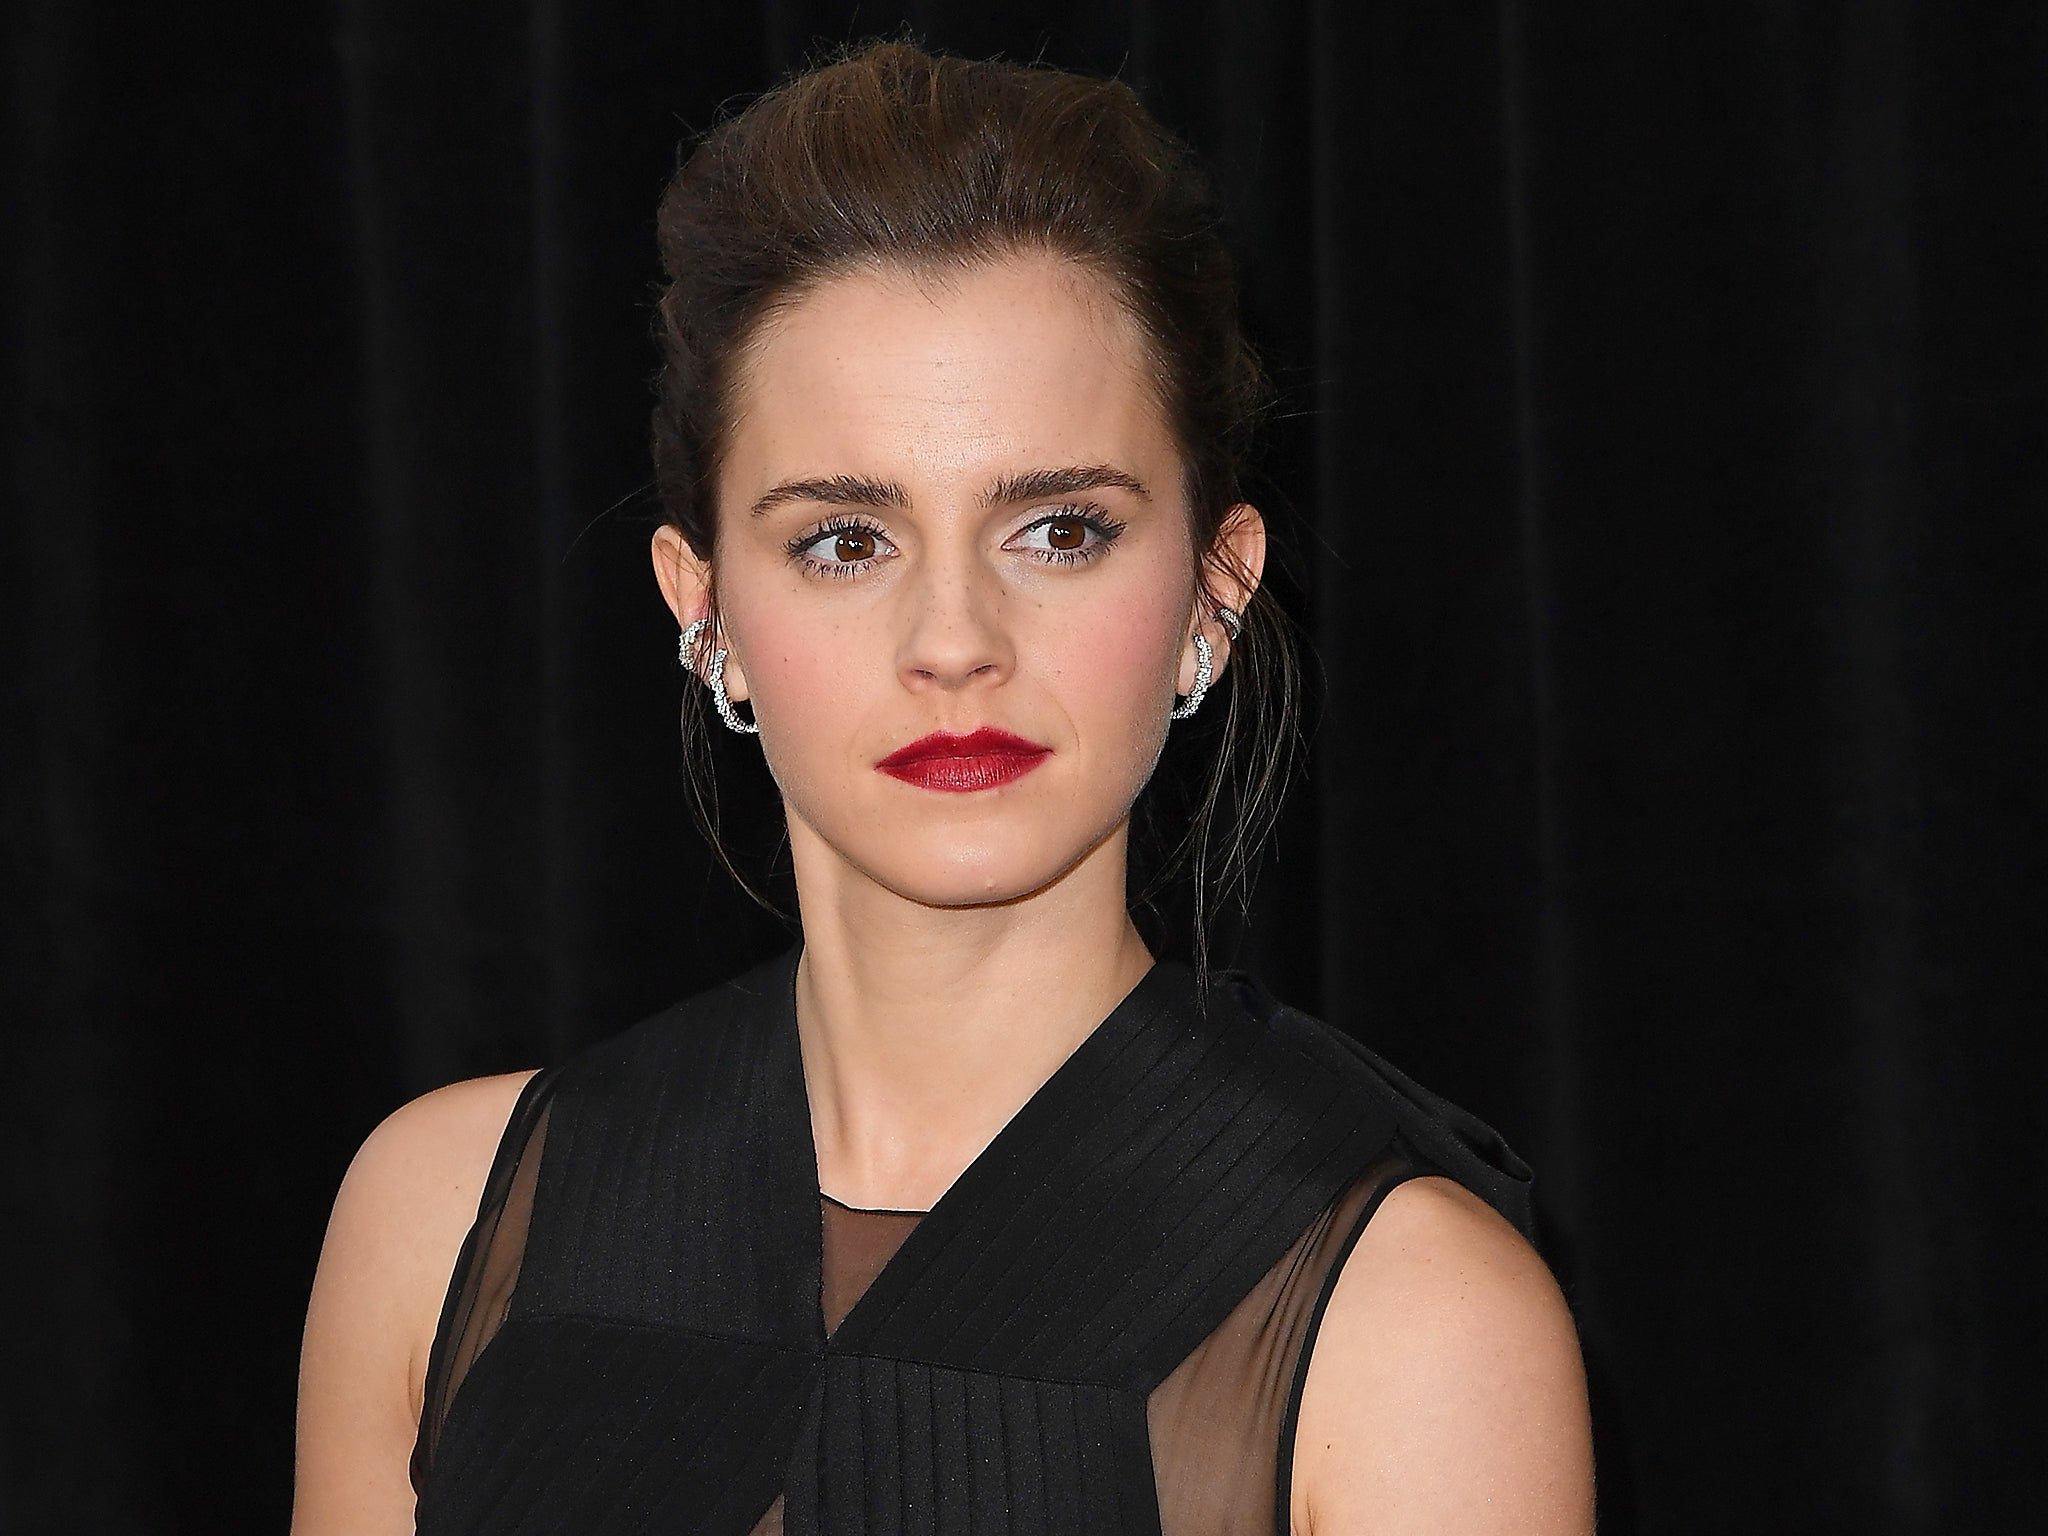 emma watson Emma Watson photos leak: Actress plans legal action over privacy breach |  The Independent